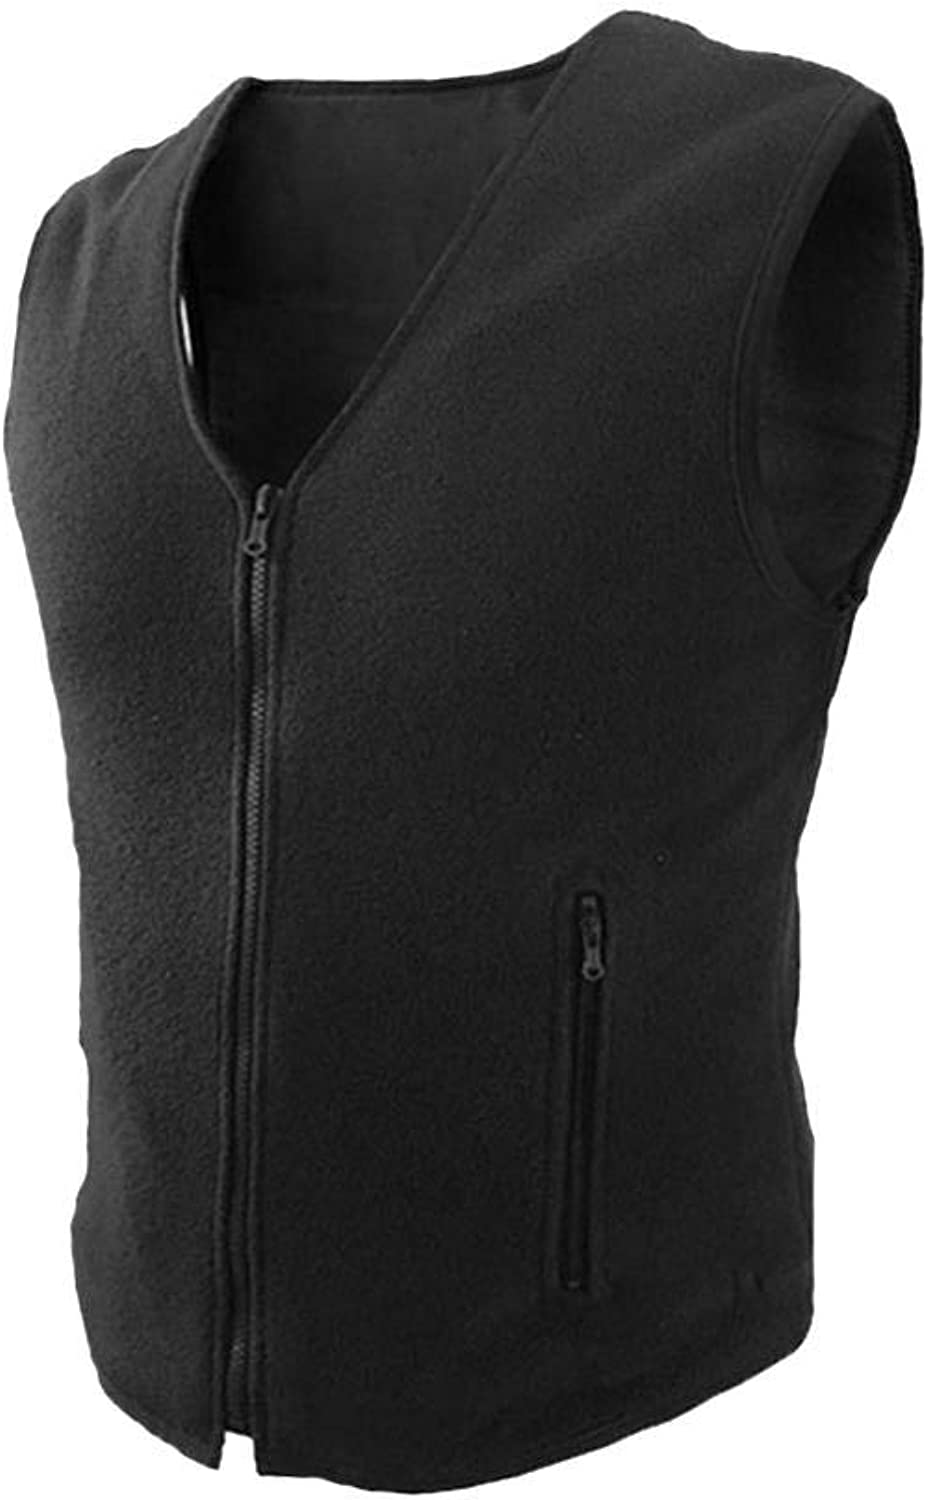 Heated Vest,USB Charging Electric Heated VestBody Warmer Down,Rechargeable Infrared Thermal Waistcoat 3 Heat Settings